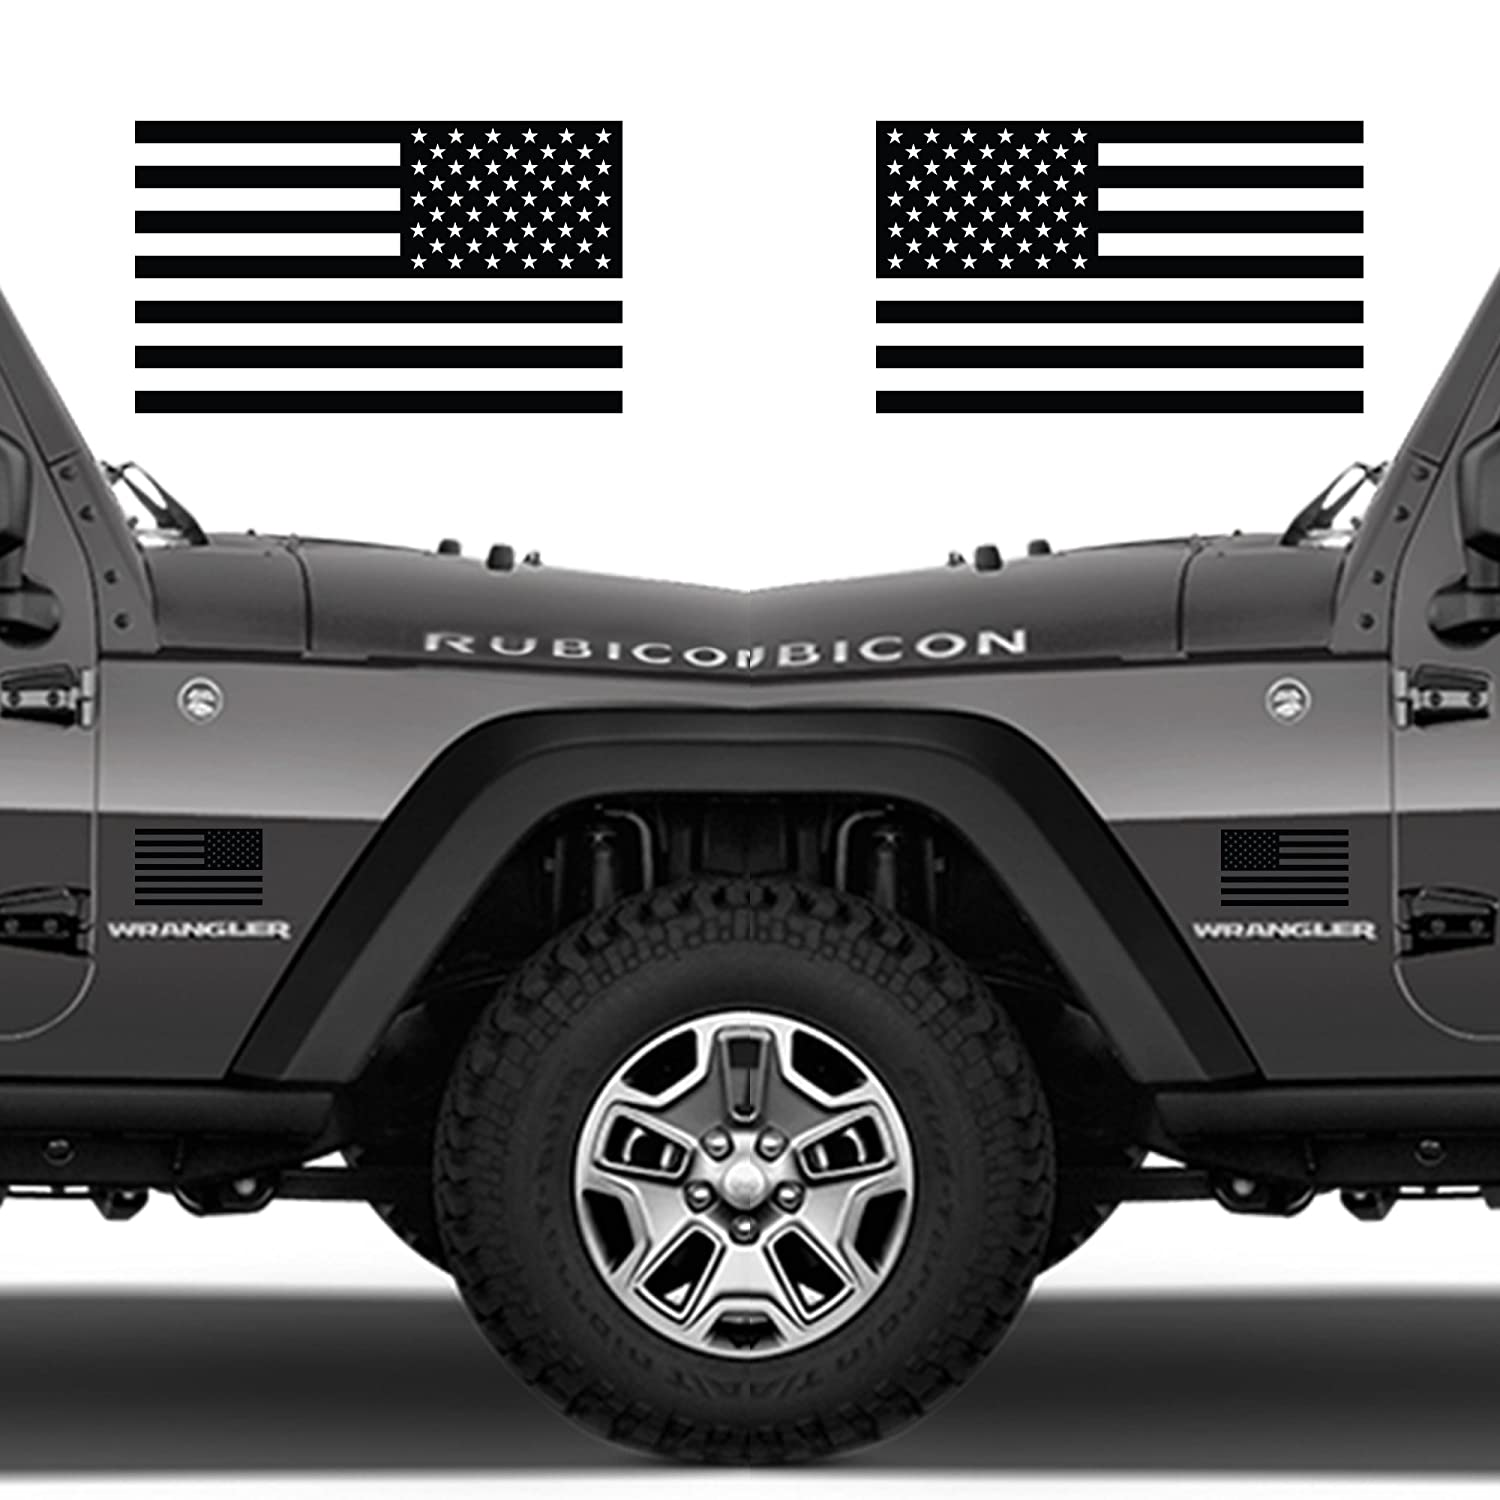 Amazoncom Bumper Stickers Decals  Magnets Exterior - Rebel flag truck decals   how to purchase and get a great value safely